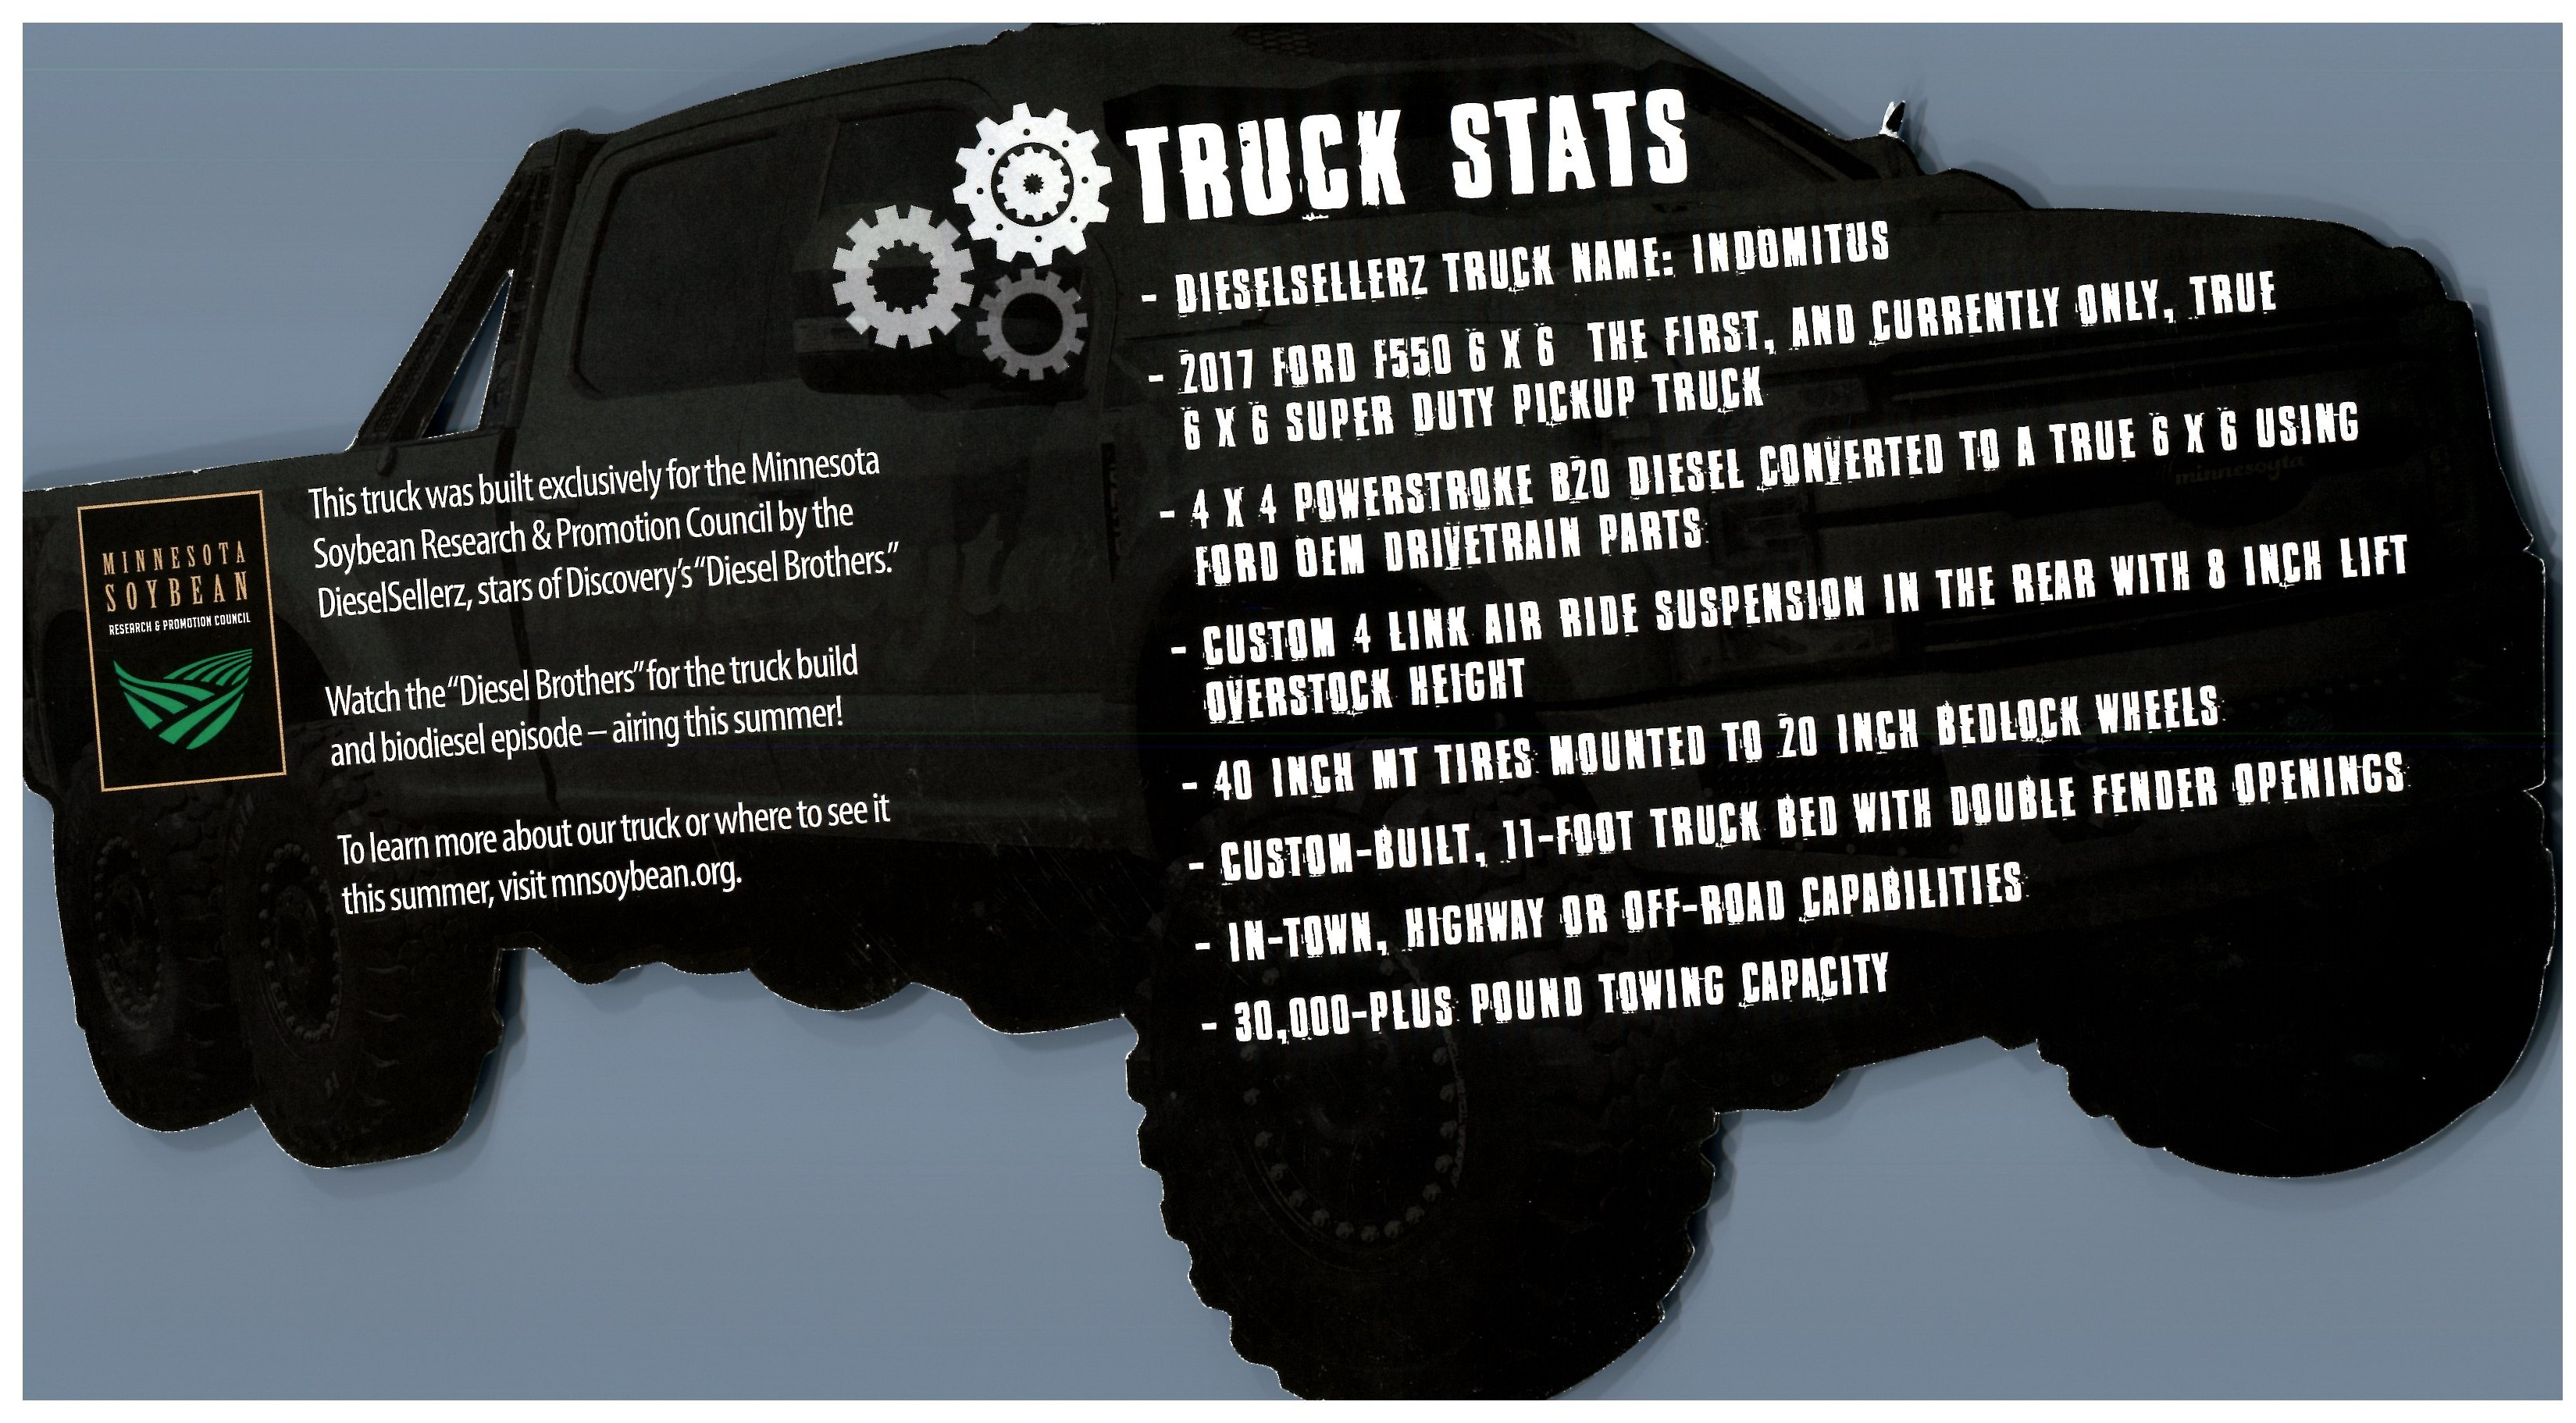 Learn More About The Truck & How MN Changed to 20% For The Biodiesel From 10!